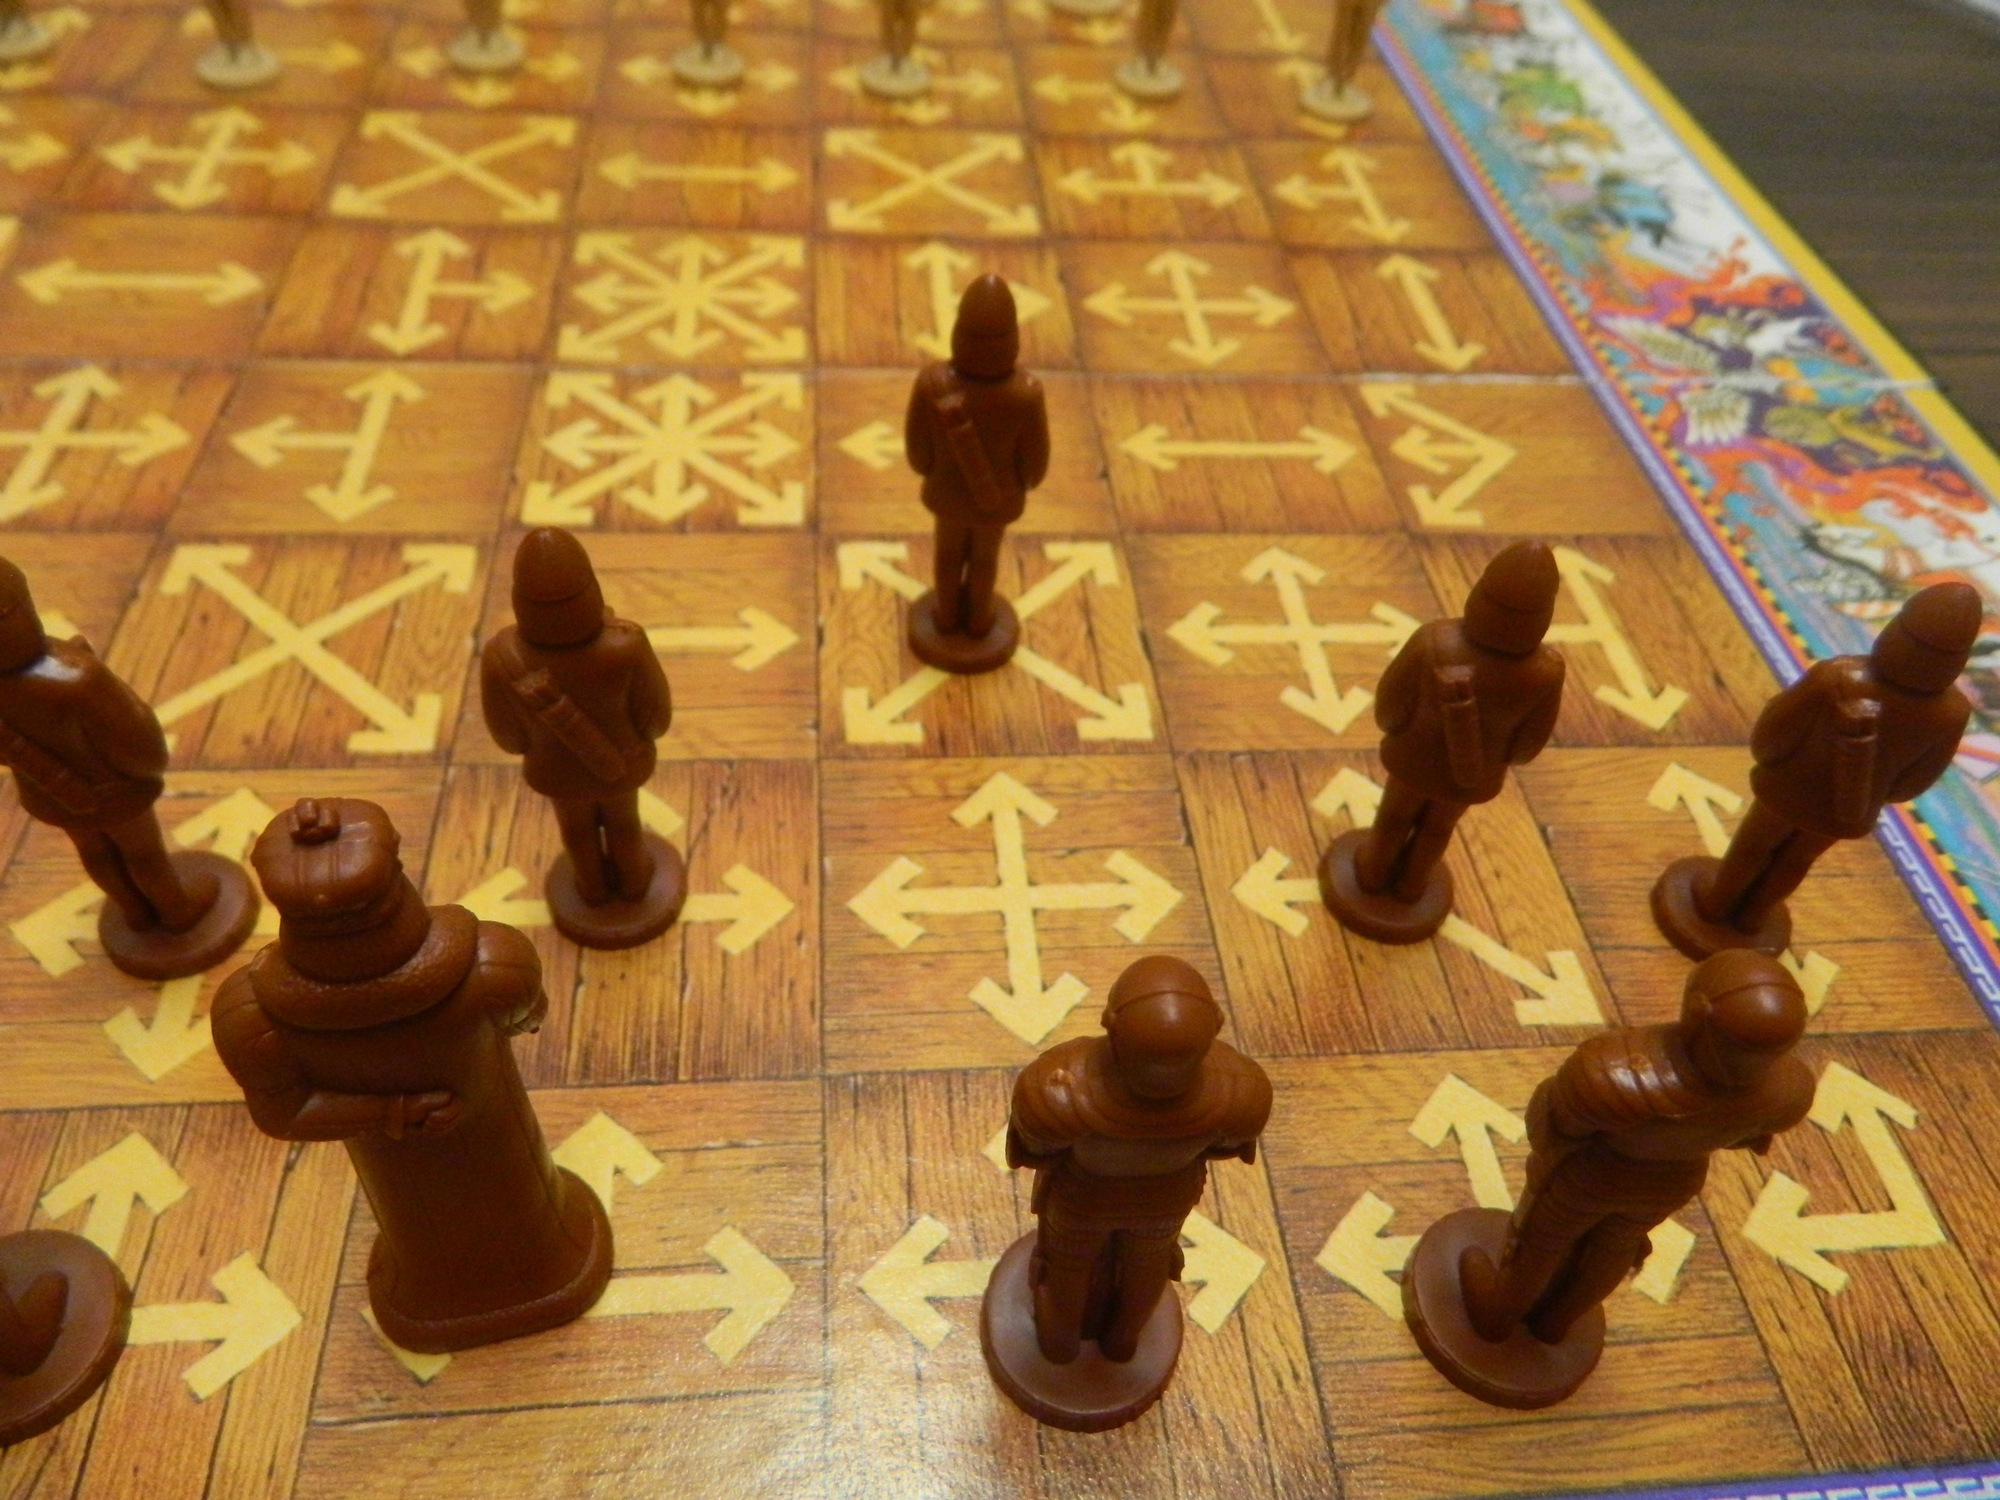 All The King's Men (AKA Smess: The Ninny's Chess) Board Game